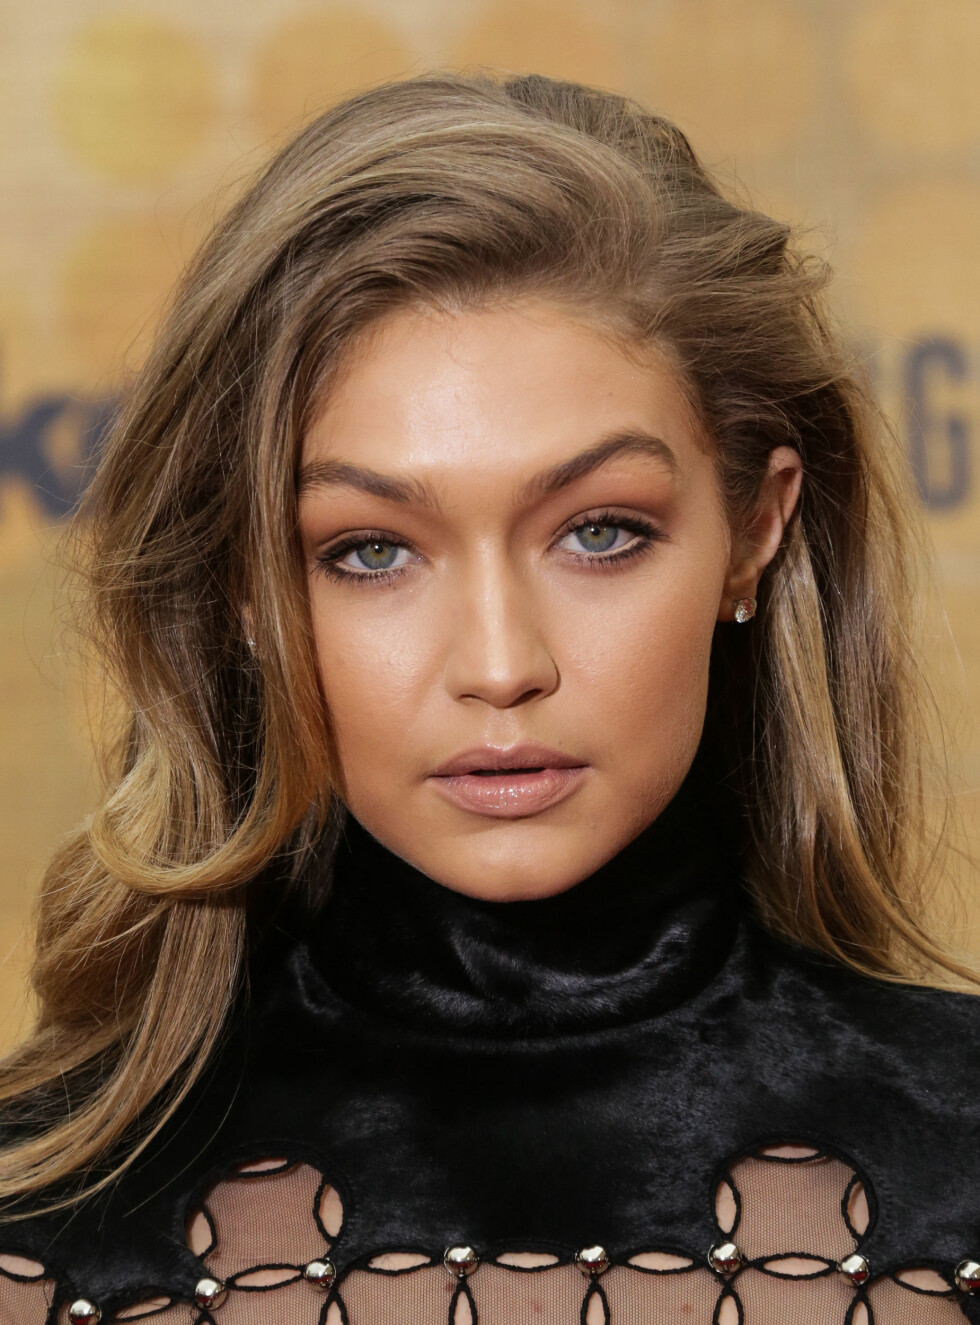 Gigi Hadid (21) Foto: Splash News